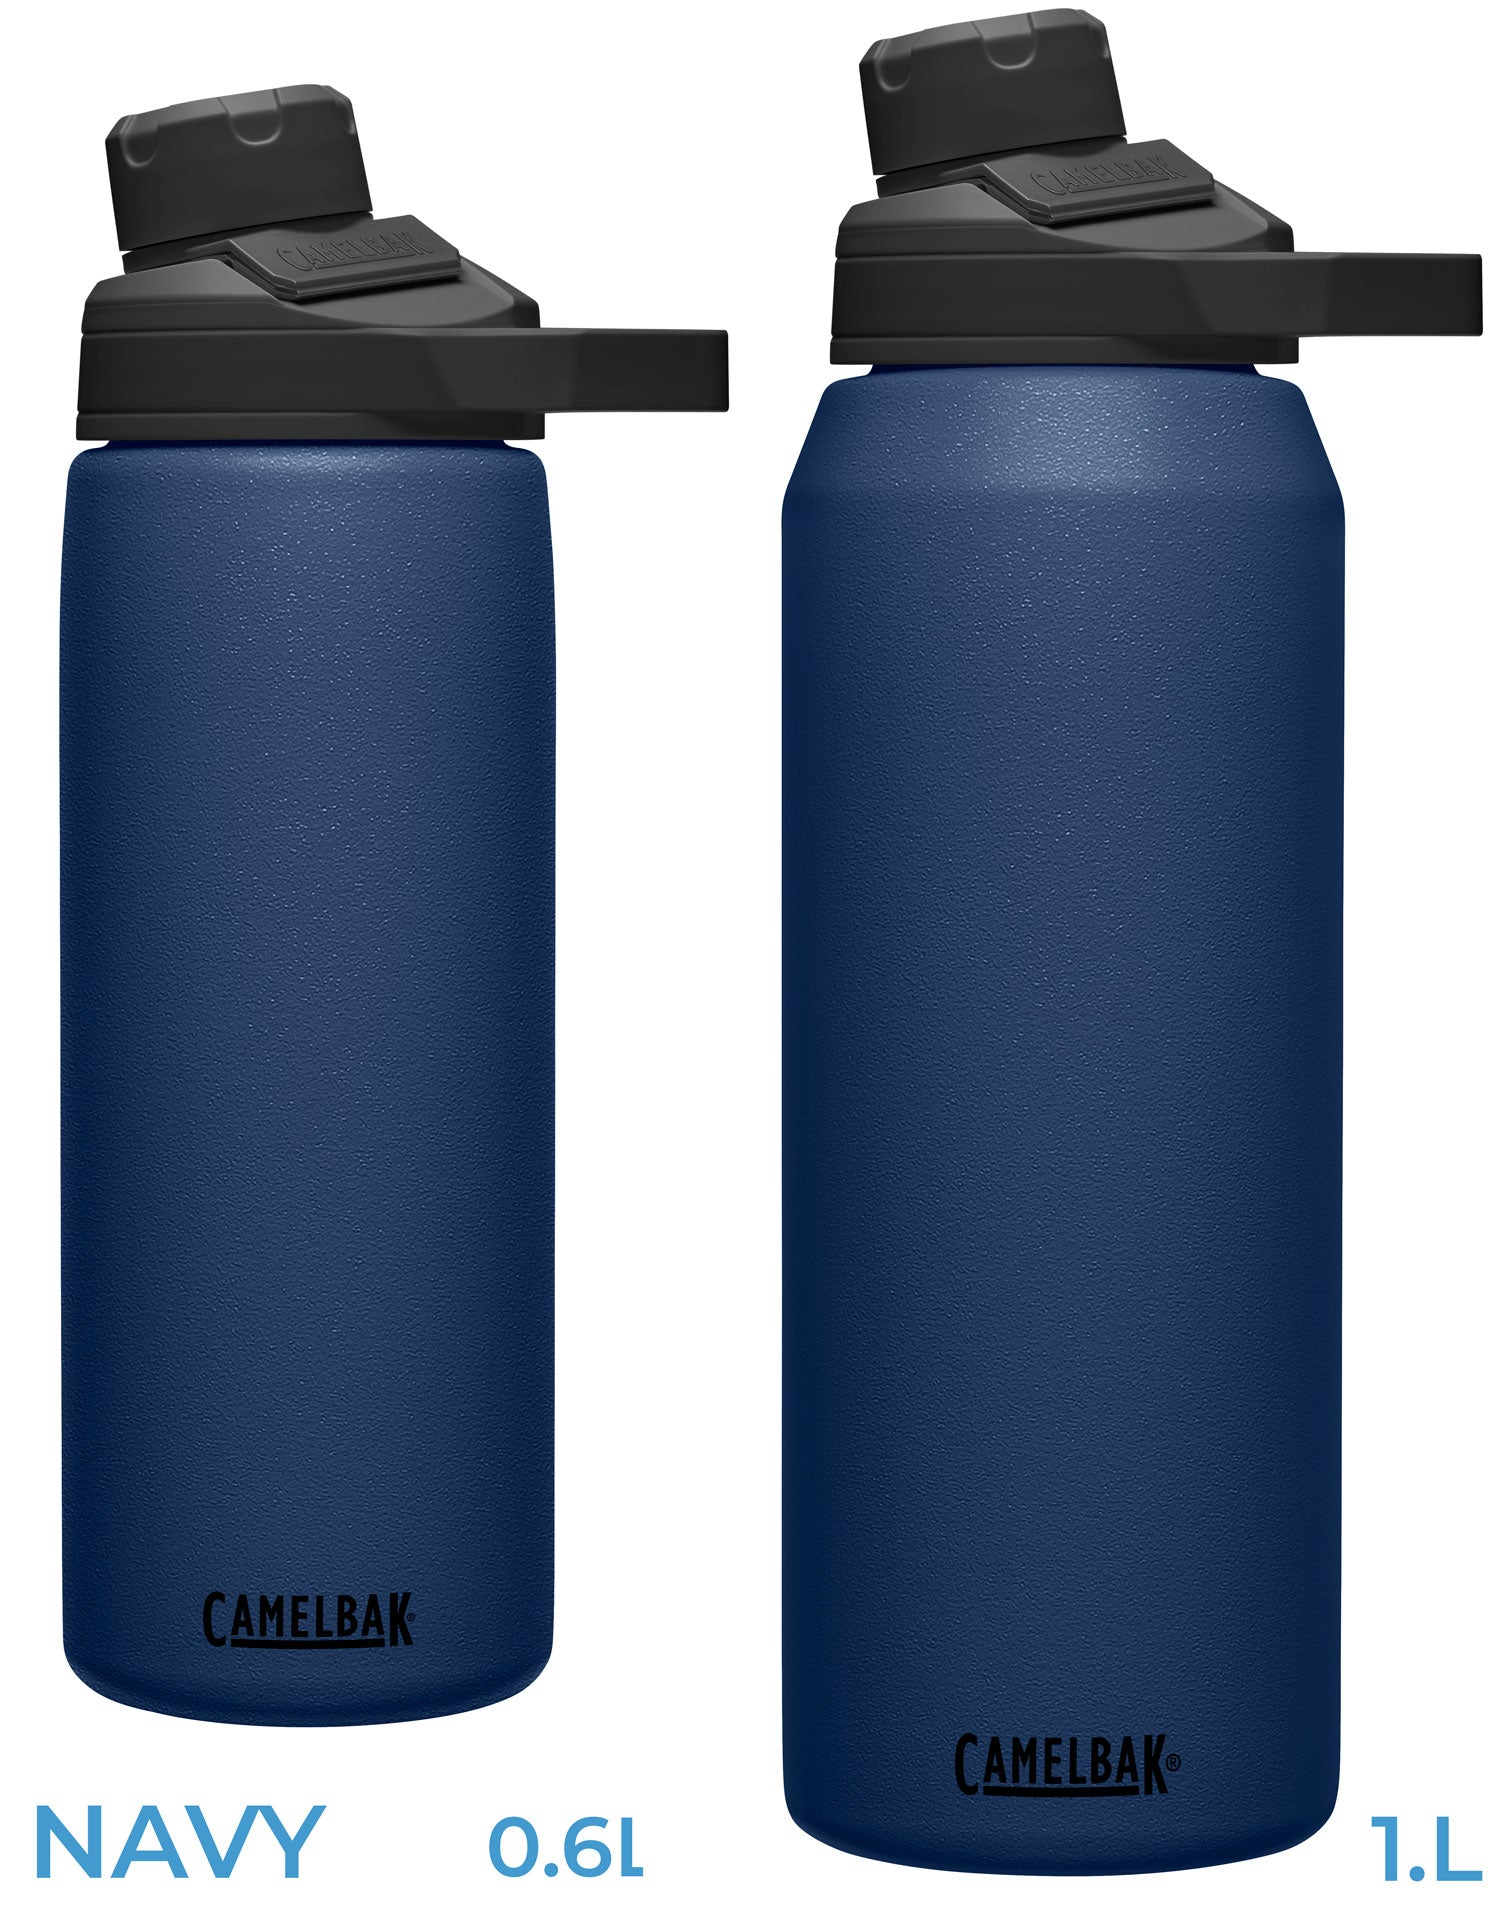 Navy CamelBak Chute Vacuum Insulated Bottle